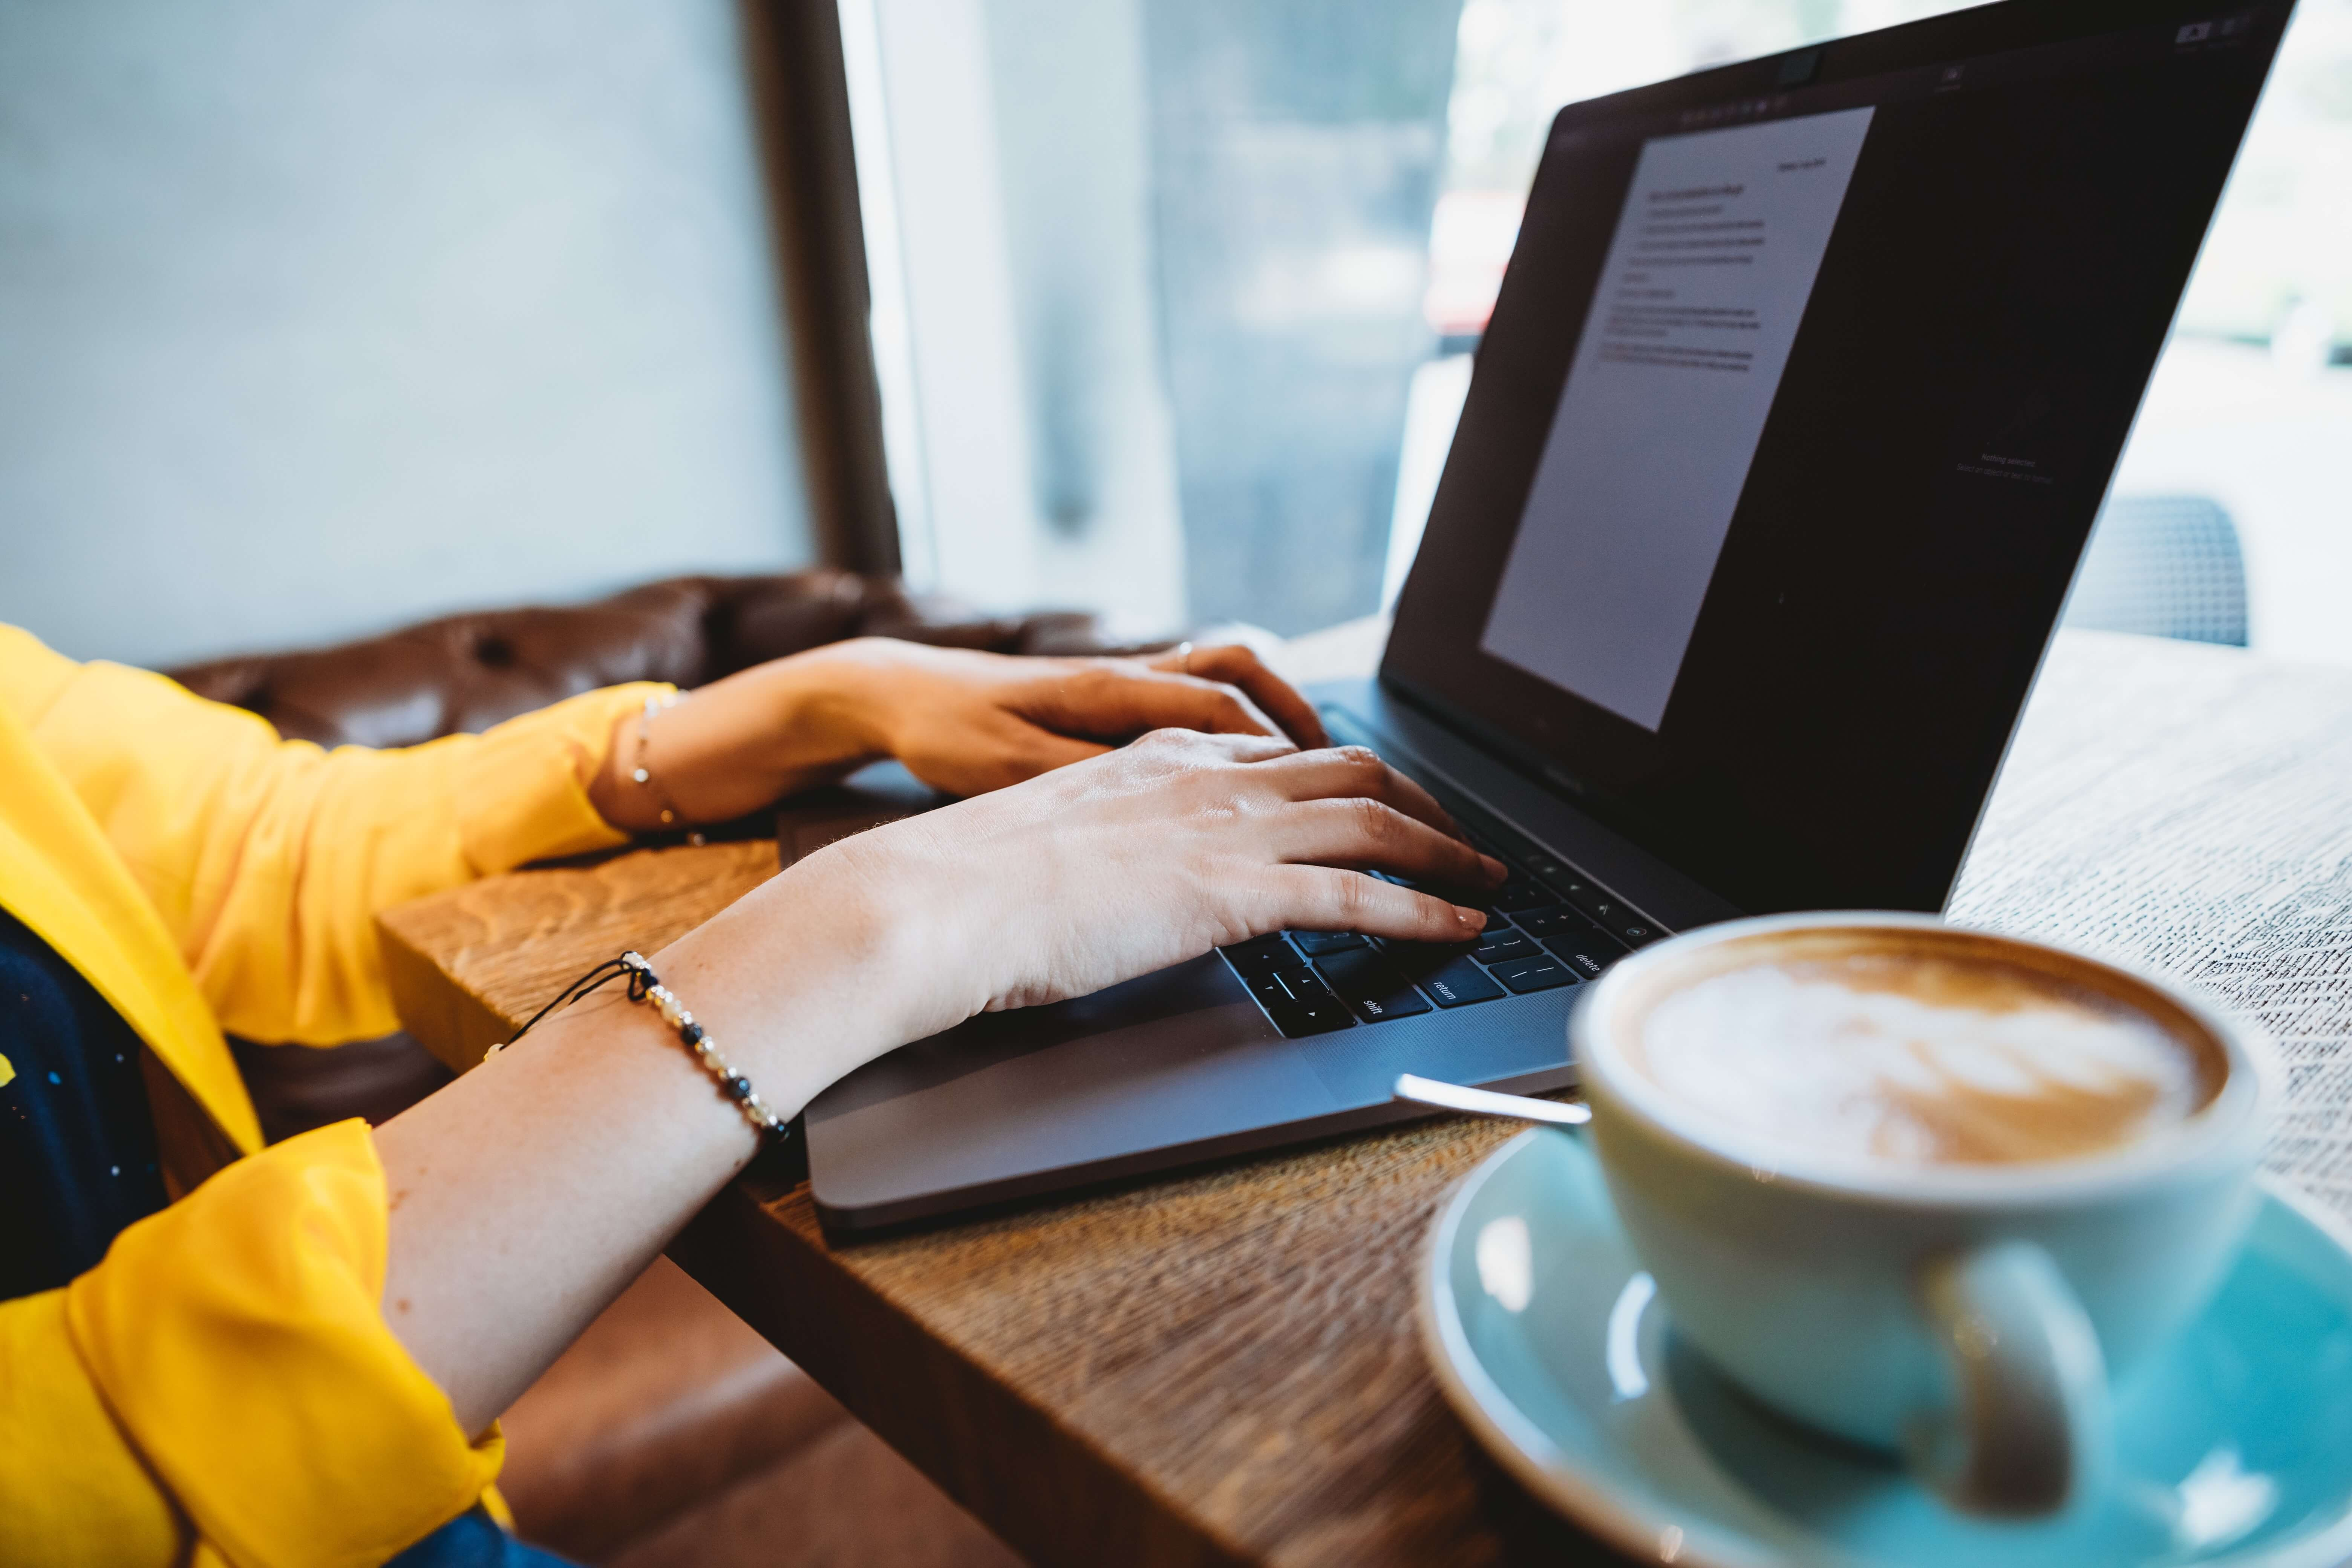 What I've learnt from freelancing in 3 months